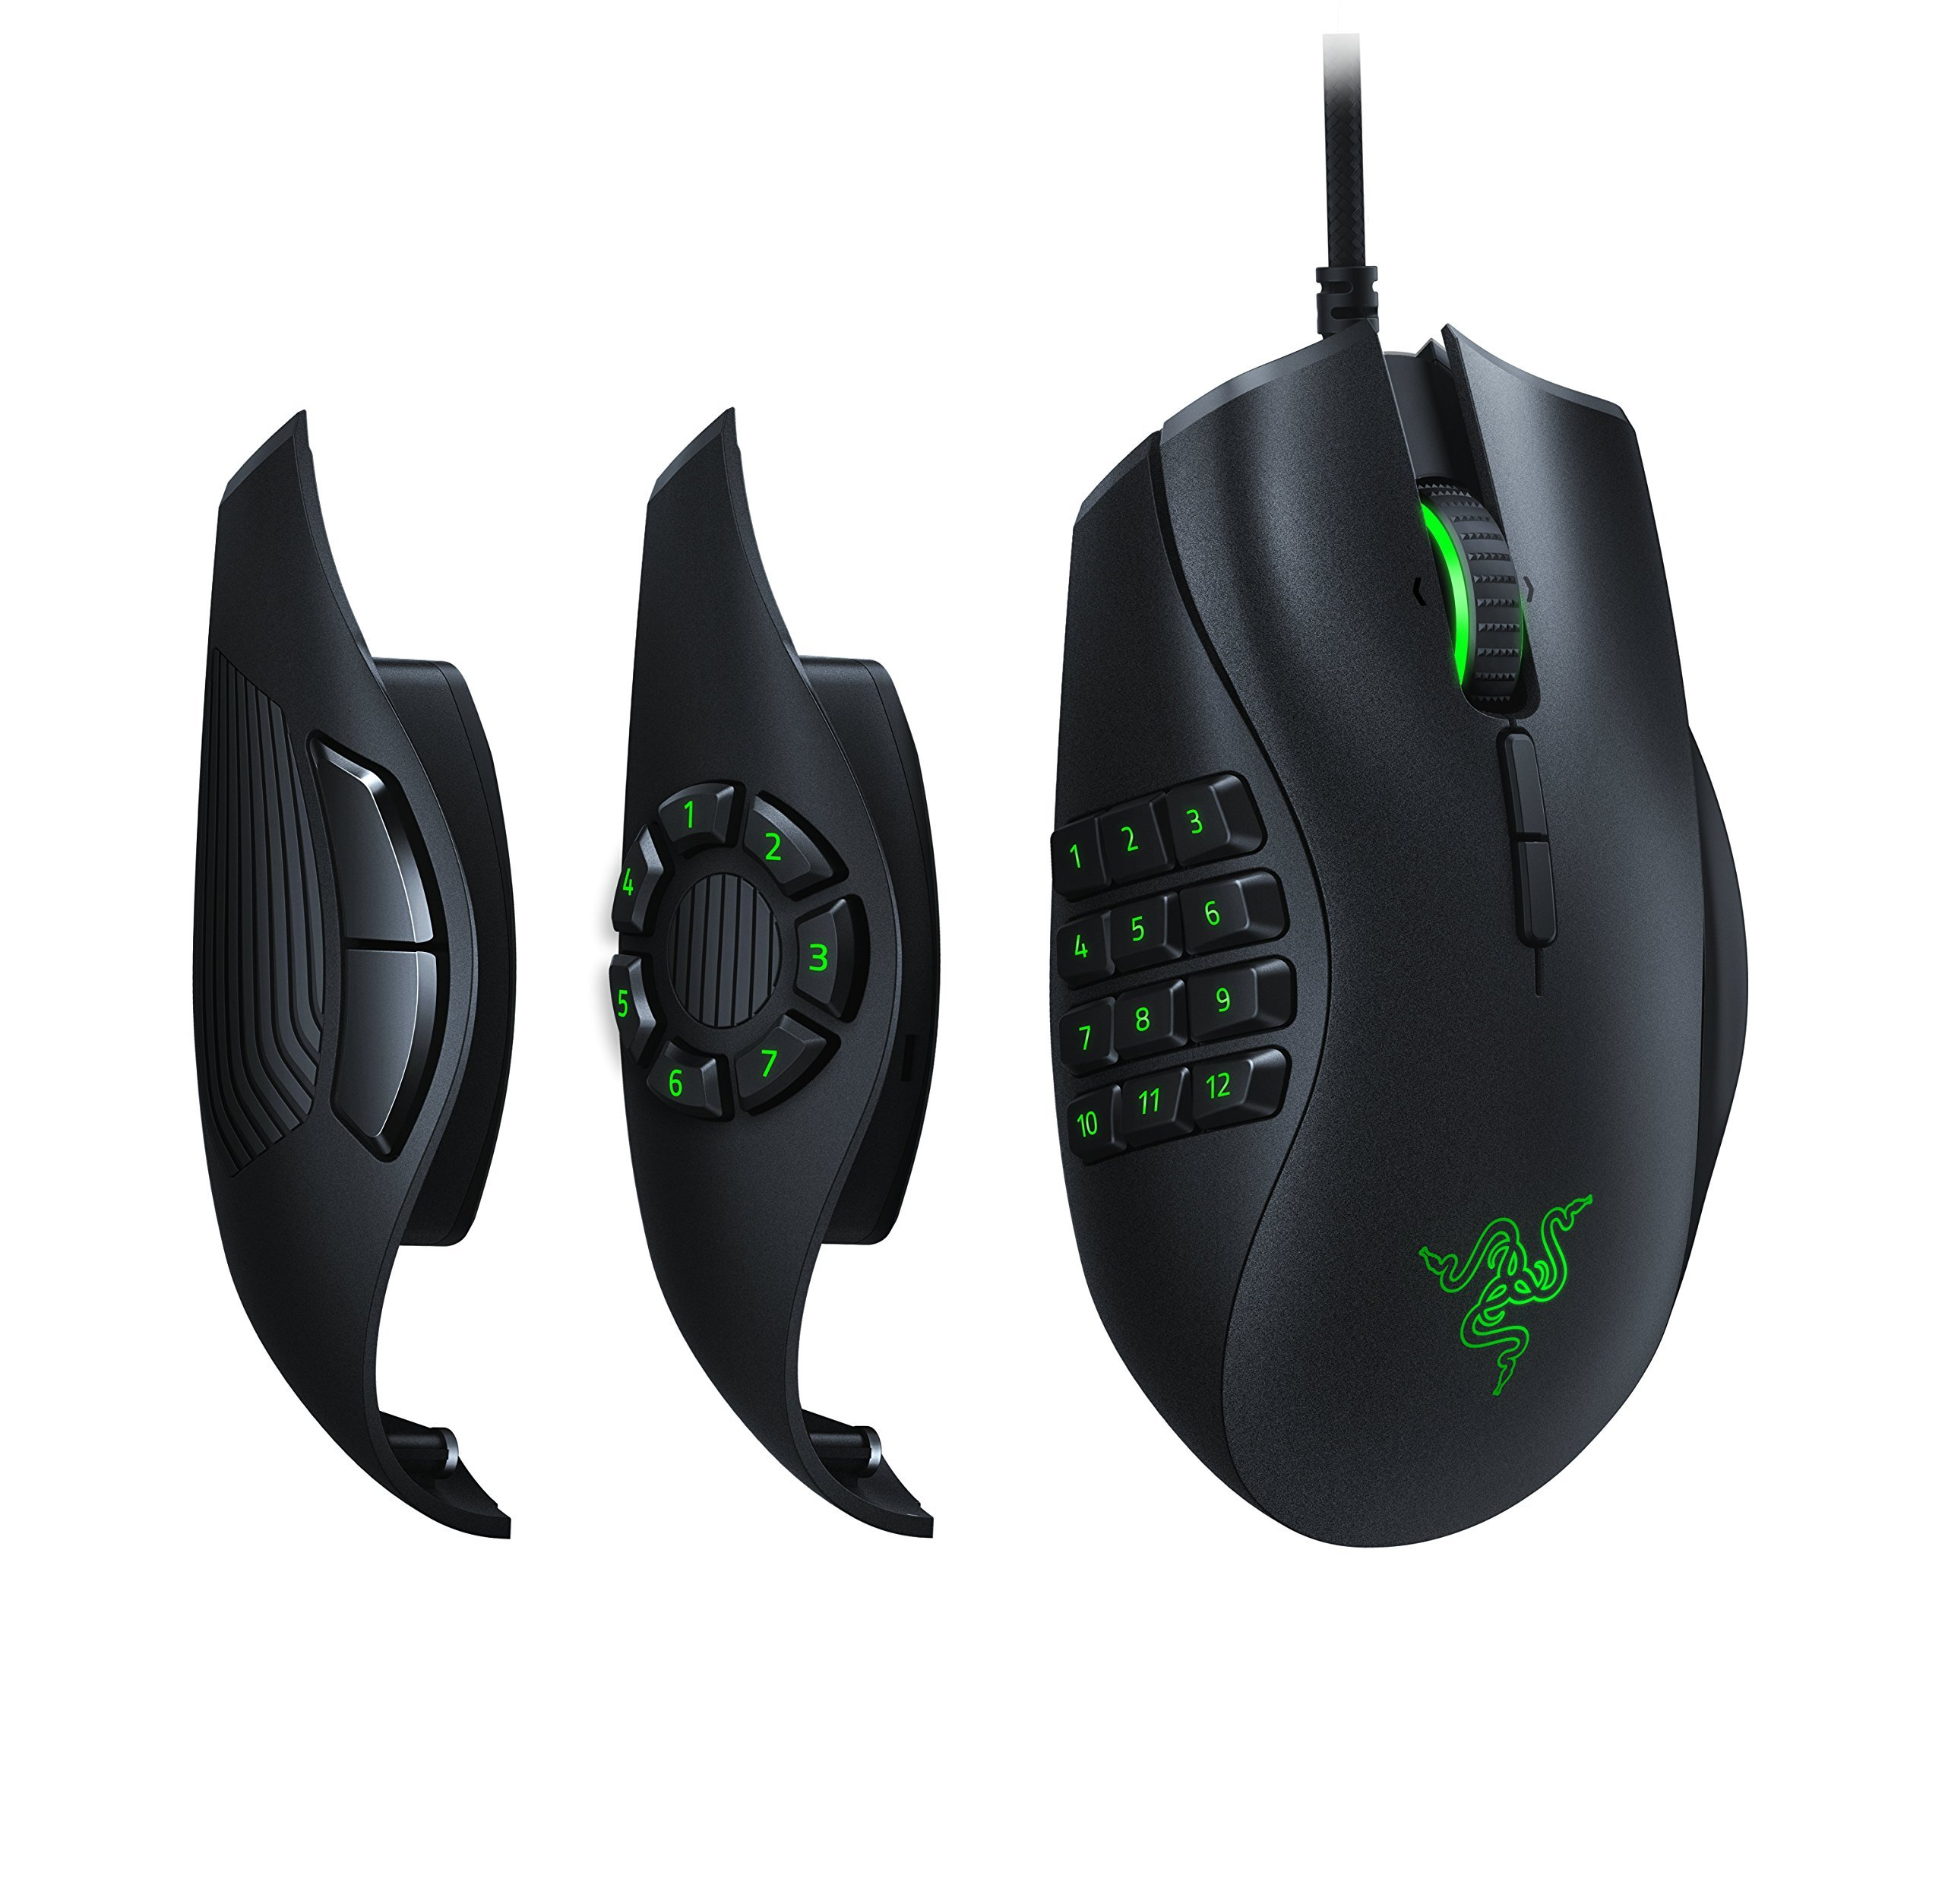 Razer Naga Trinity - Chroma Gaming Mouse Interchangeable Side Plates - Up to 19 Programmable buttons (Renewed) by Razer